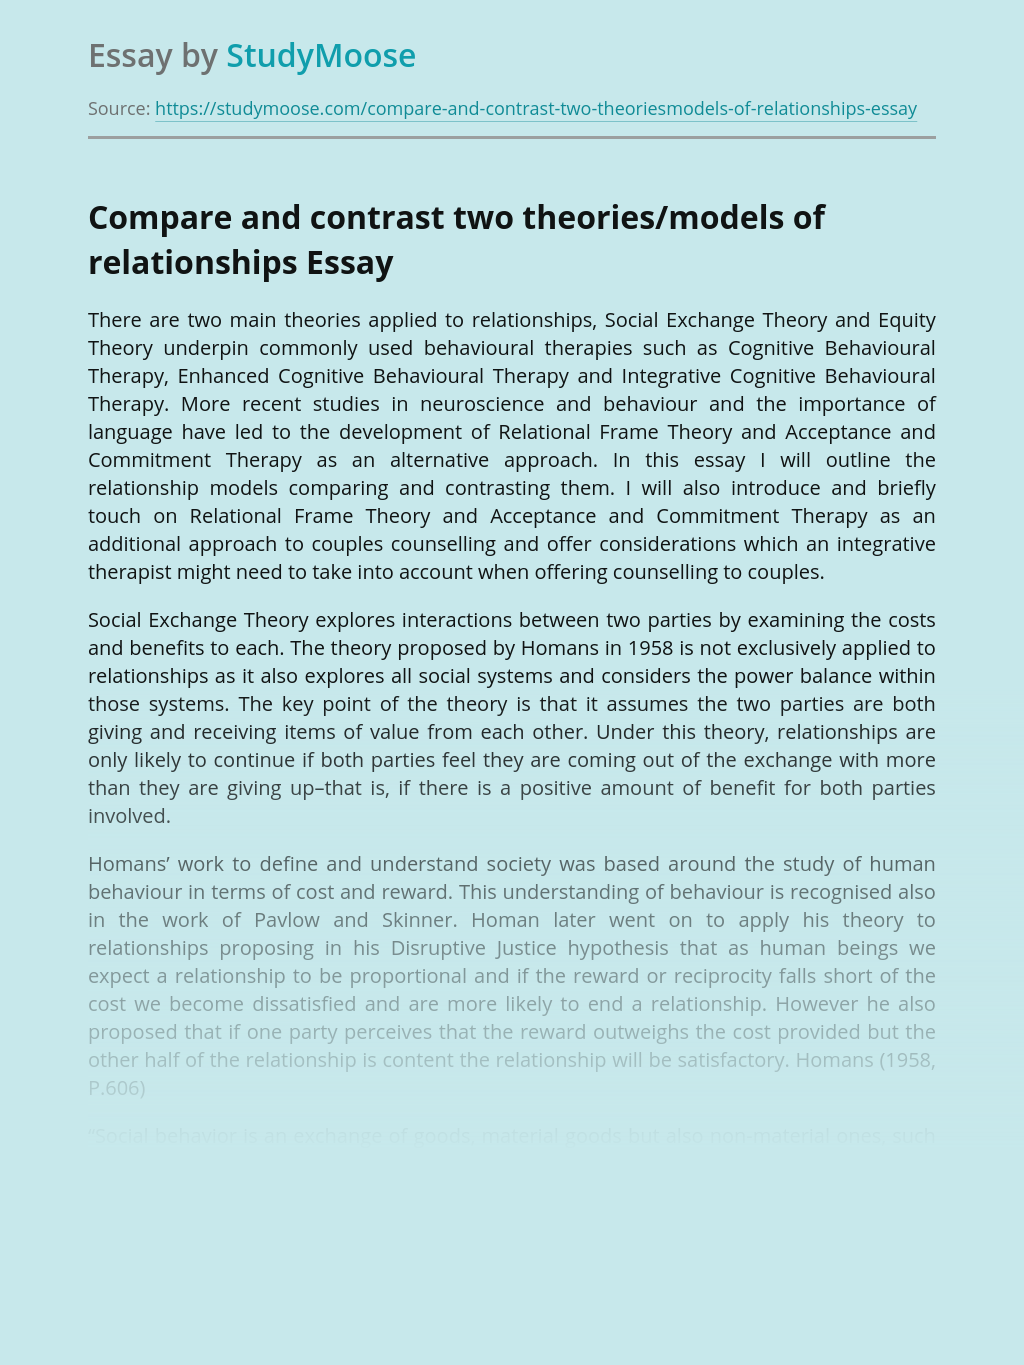 Compare and contrast two theories/models of relationships